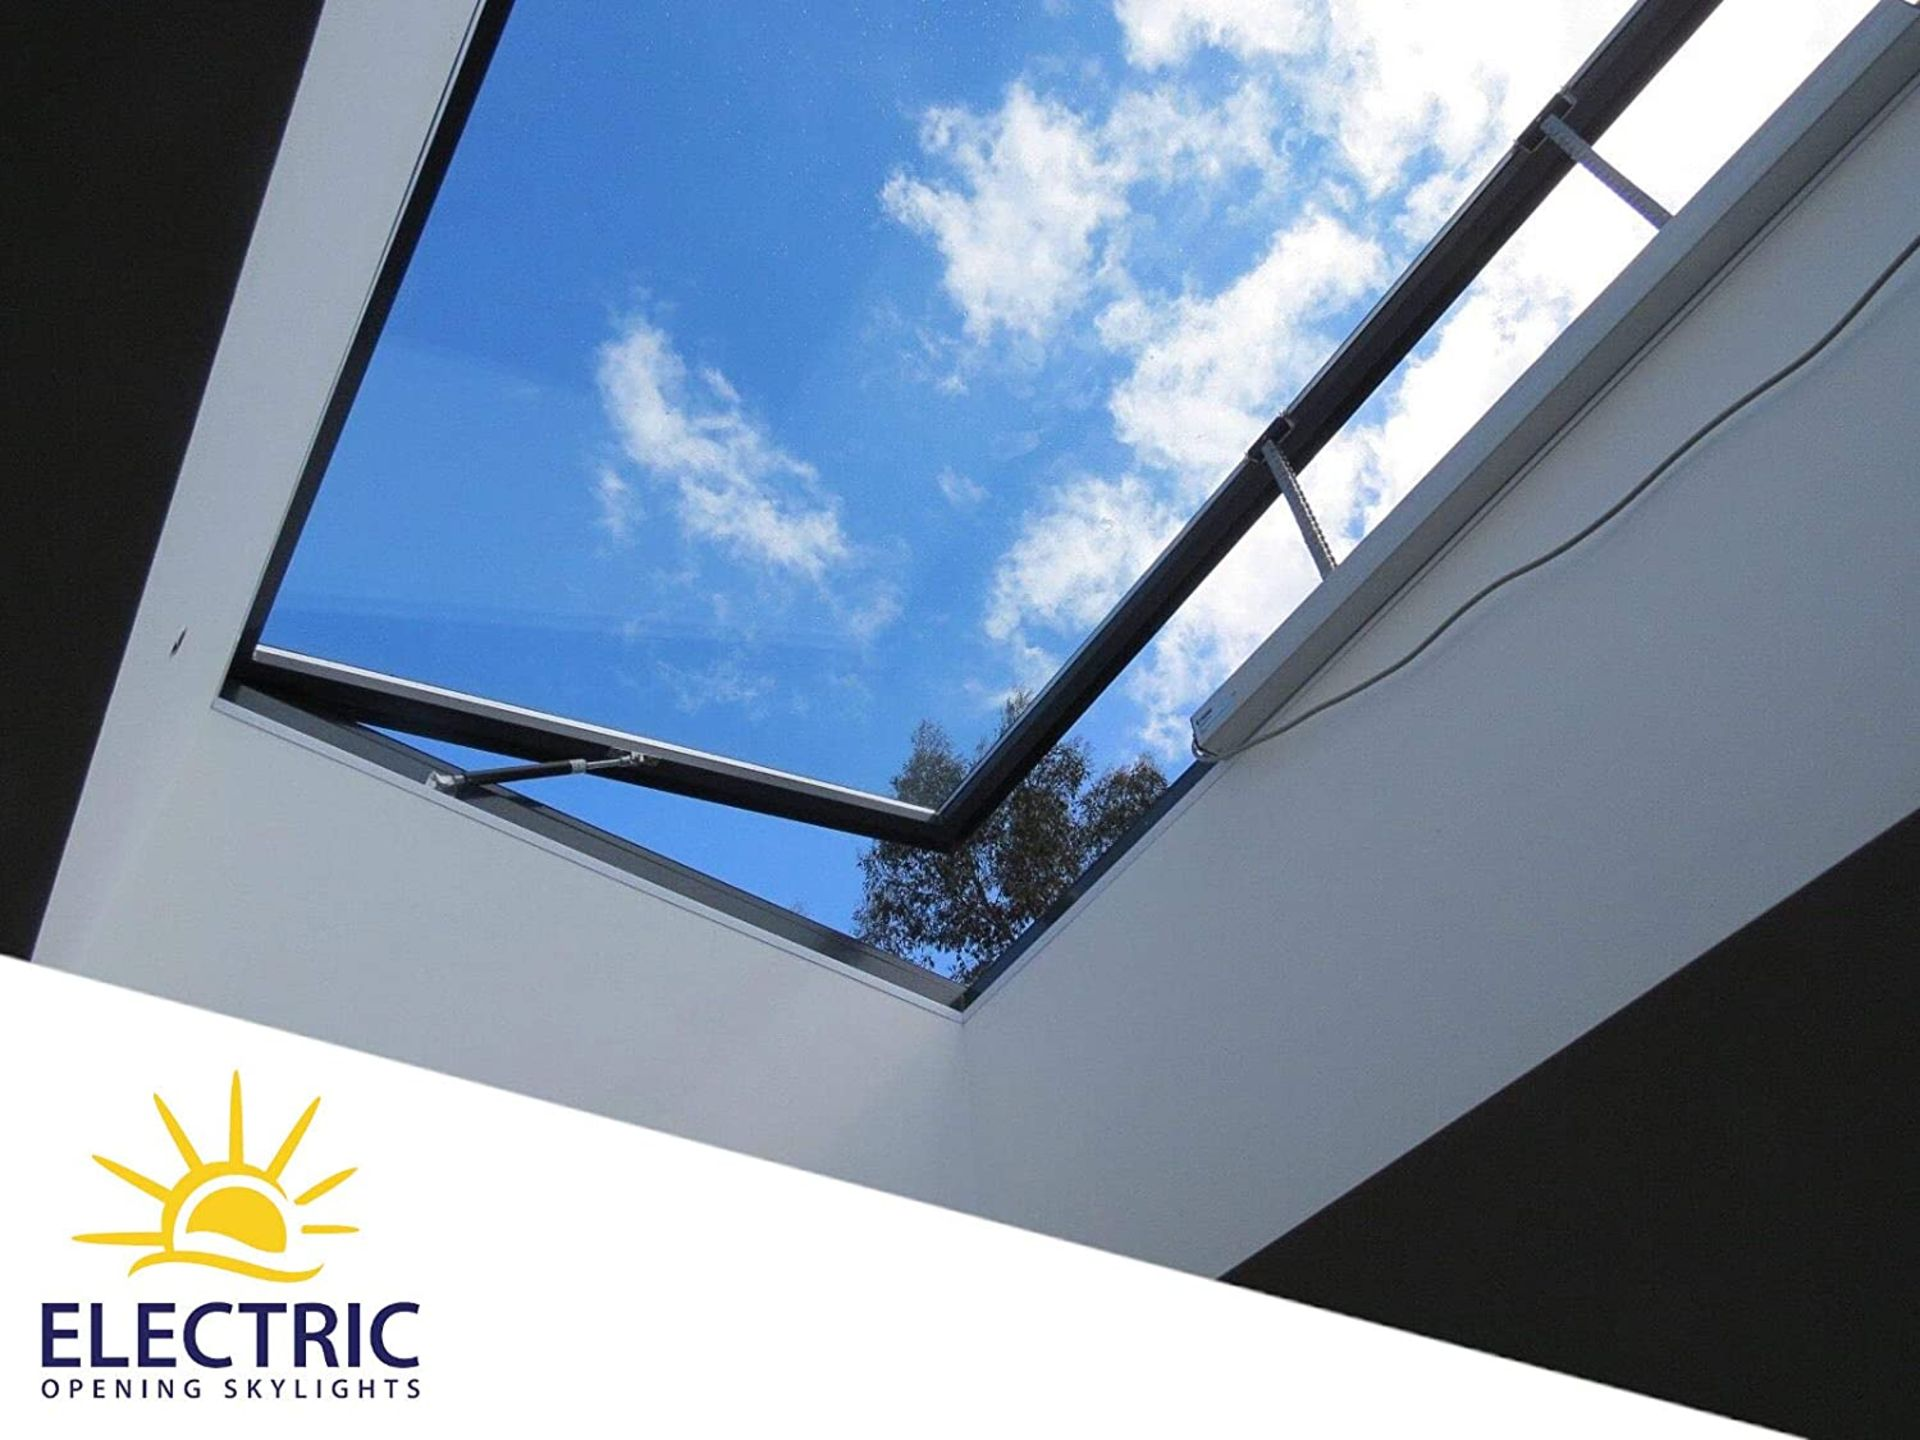 Panoroof (EOS) Electric Opening Skylight 800x1800mm - Aluminiun Frame Double Glazed Laminated Self- - Image 2 of 6